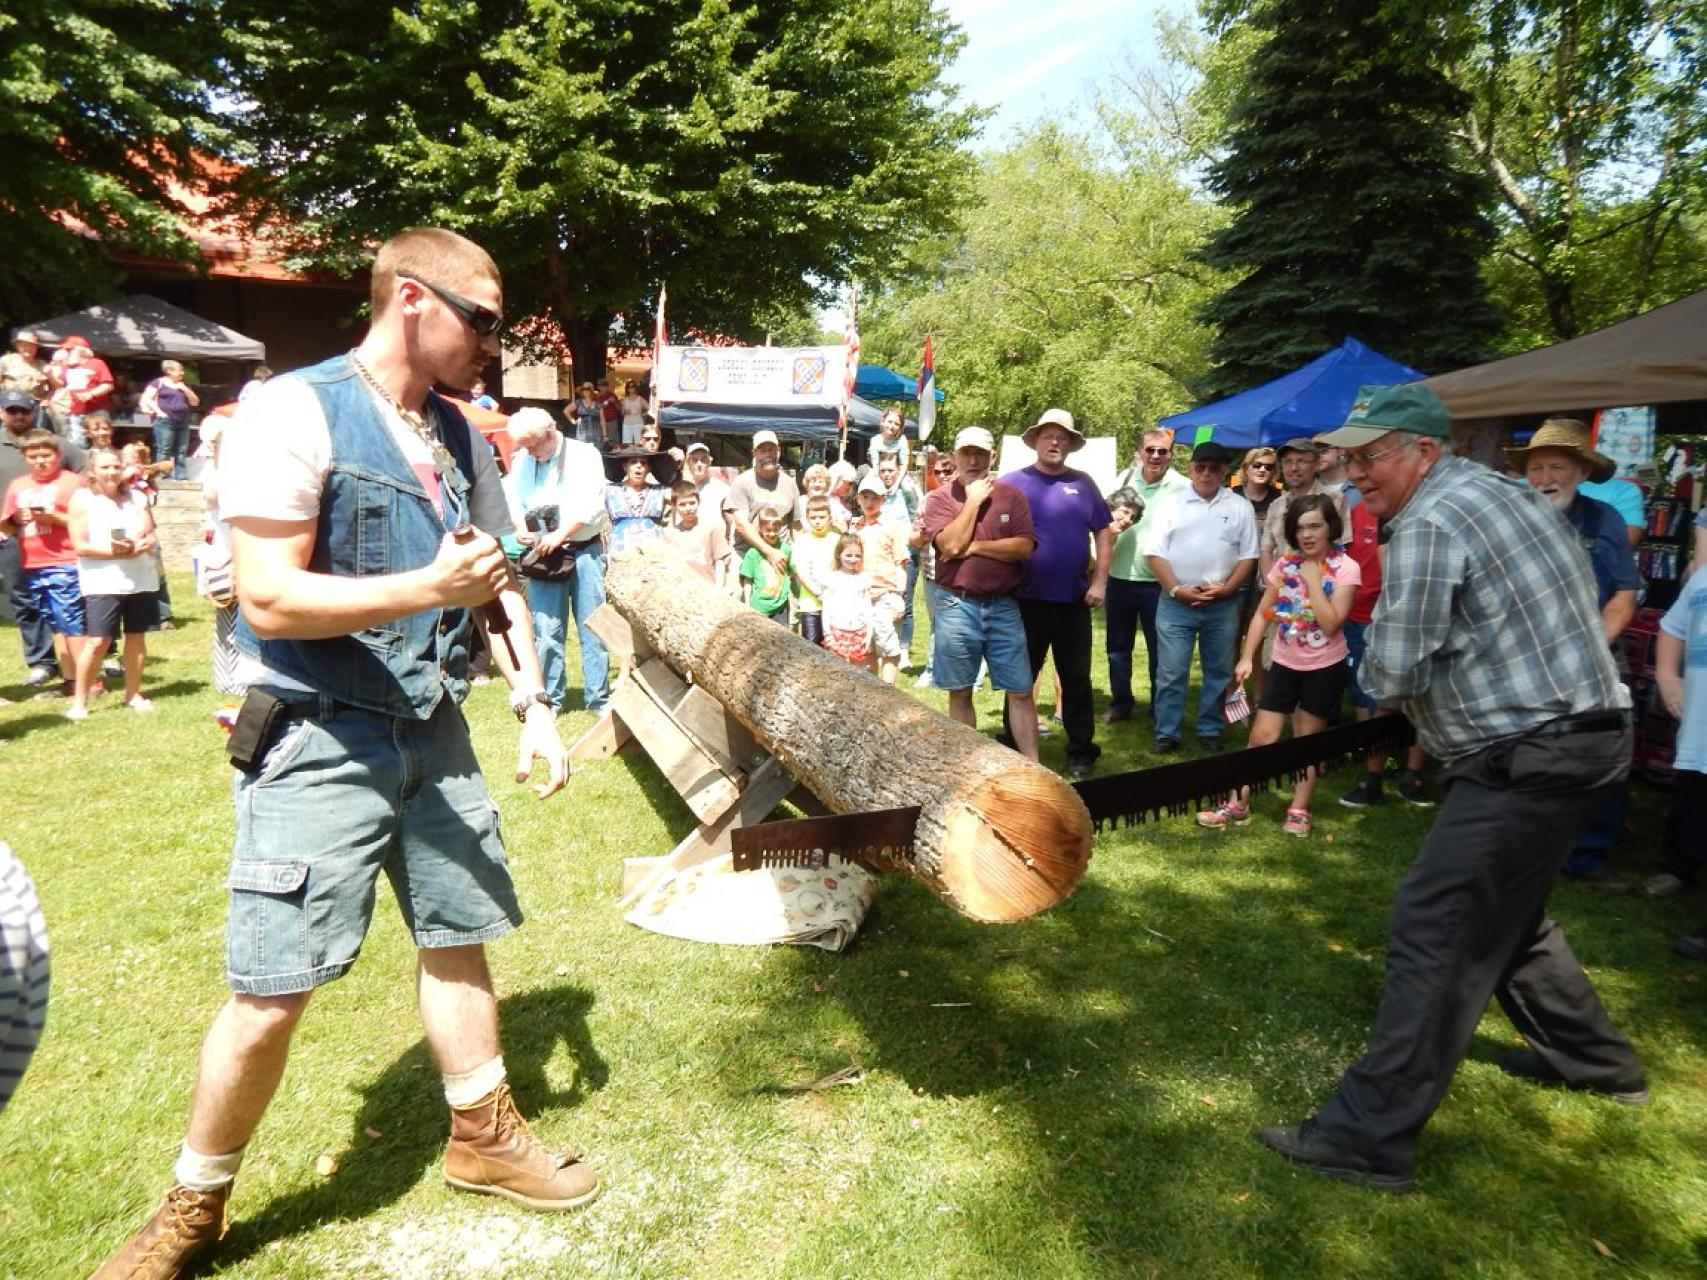 Log sawing at Swain County Heritage Festival